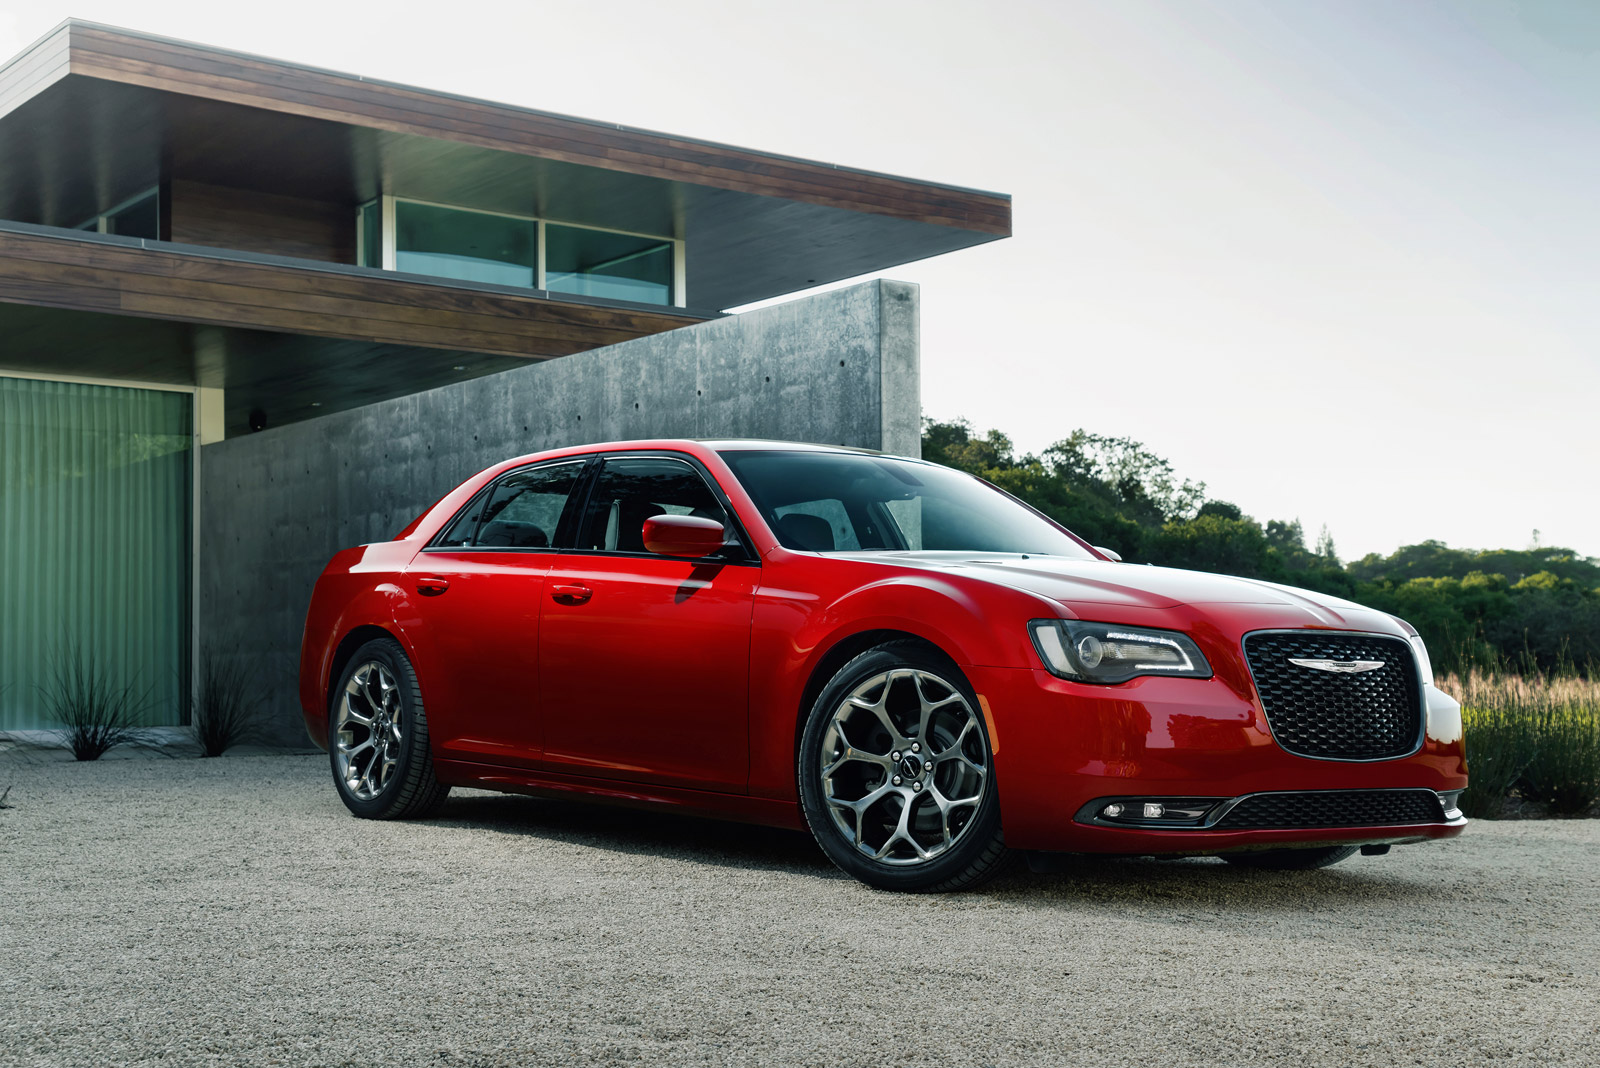 new and used chrysler 300 prices photos reviews specs the car connection. Black Bedroom Furniture Sets. Home Design Ideas